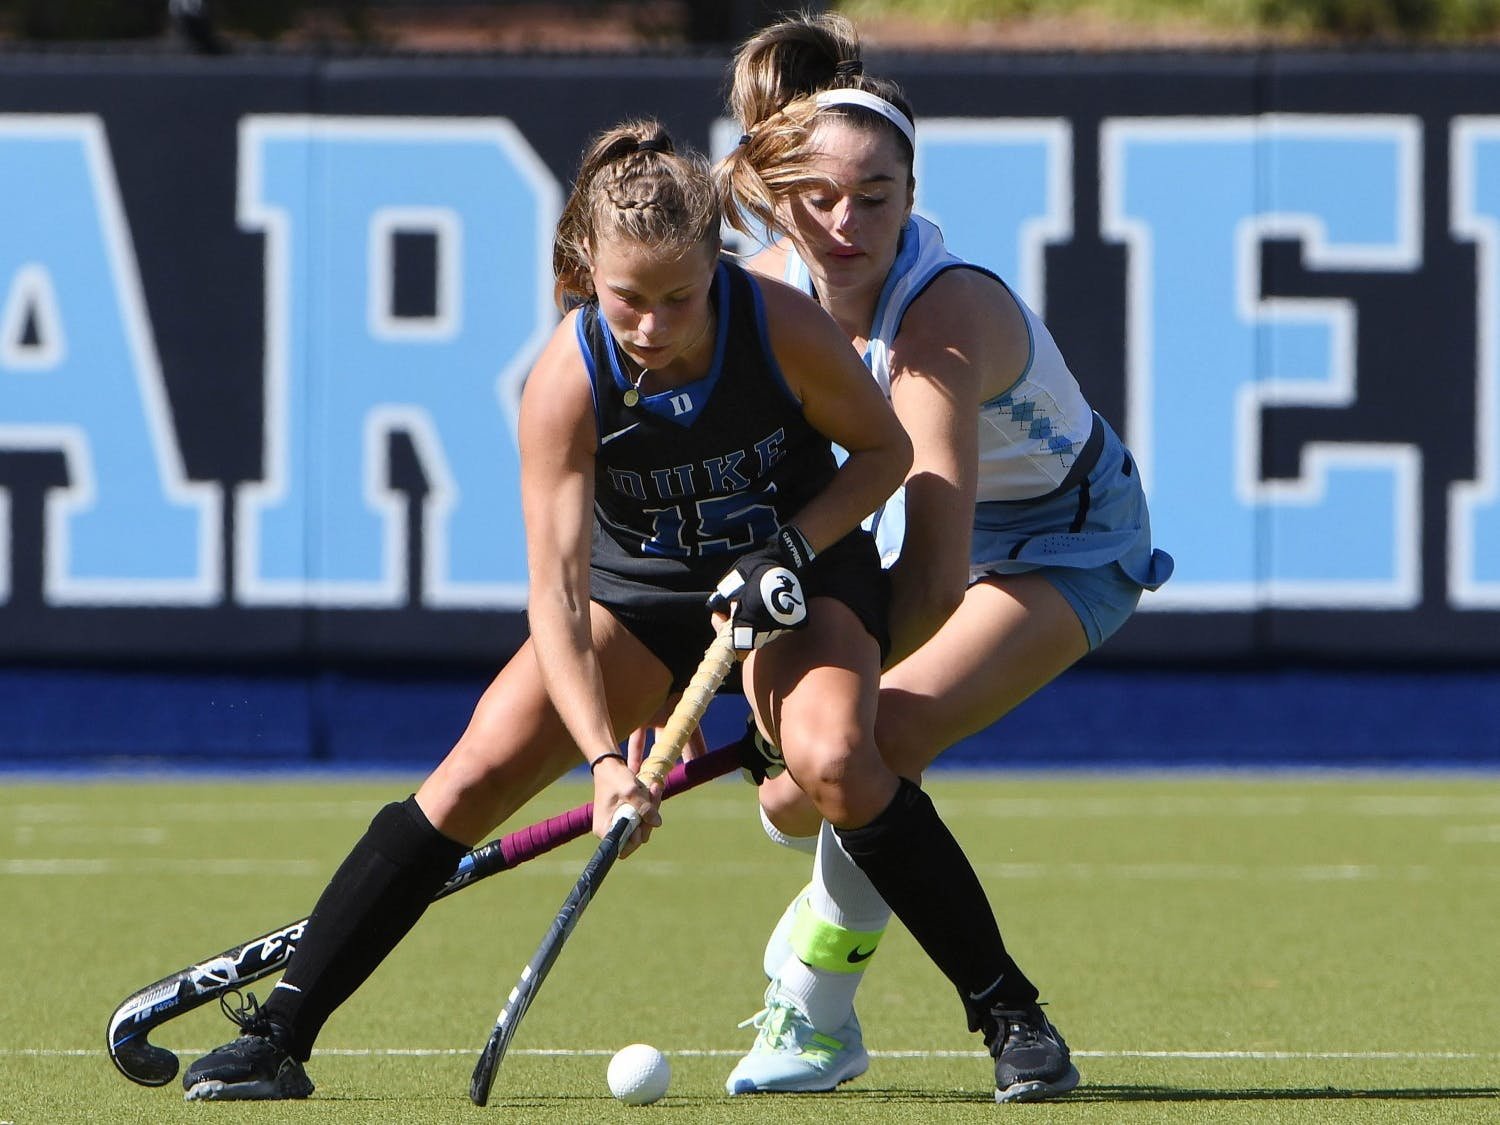 Duke fought until the very end Sunday against one of the top teams in the country.